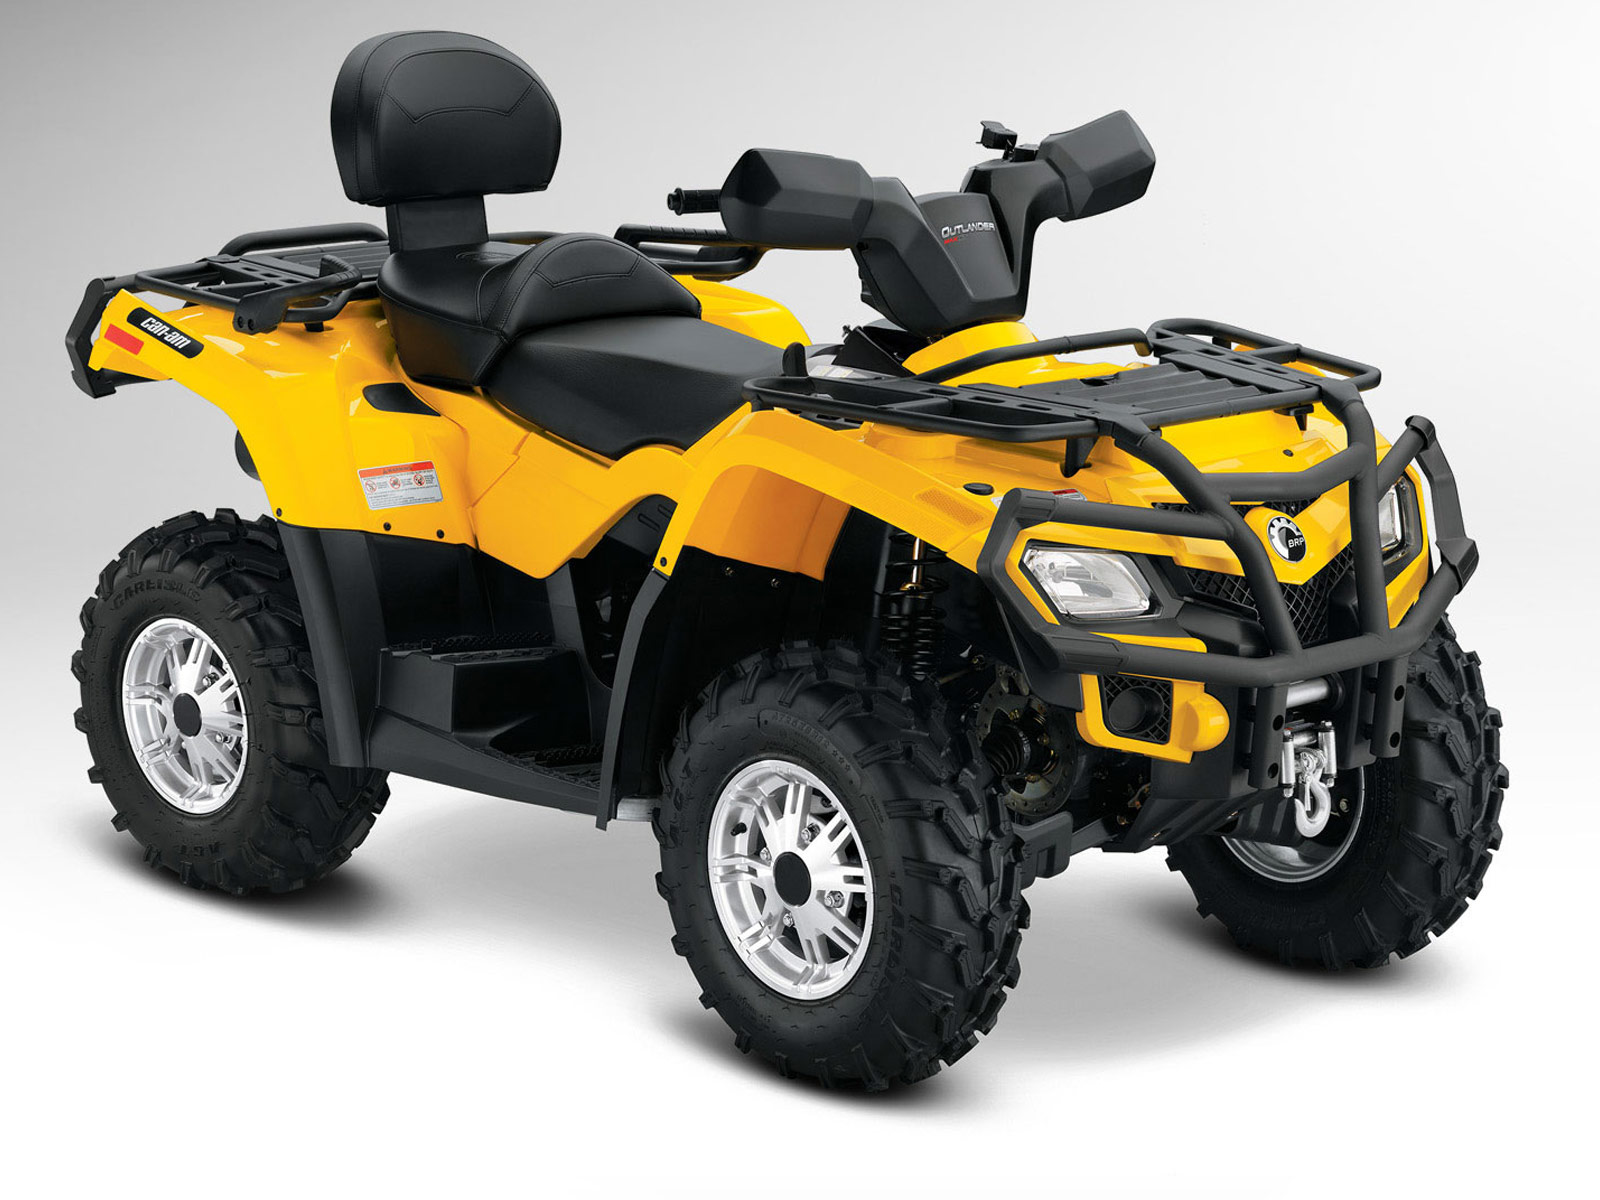 max atv wiring diagram wiring librarycan am atv pictures 2012 outlander max400xt rh atv pictures blogspot [ 1600 x 1200 Pixel ]